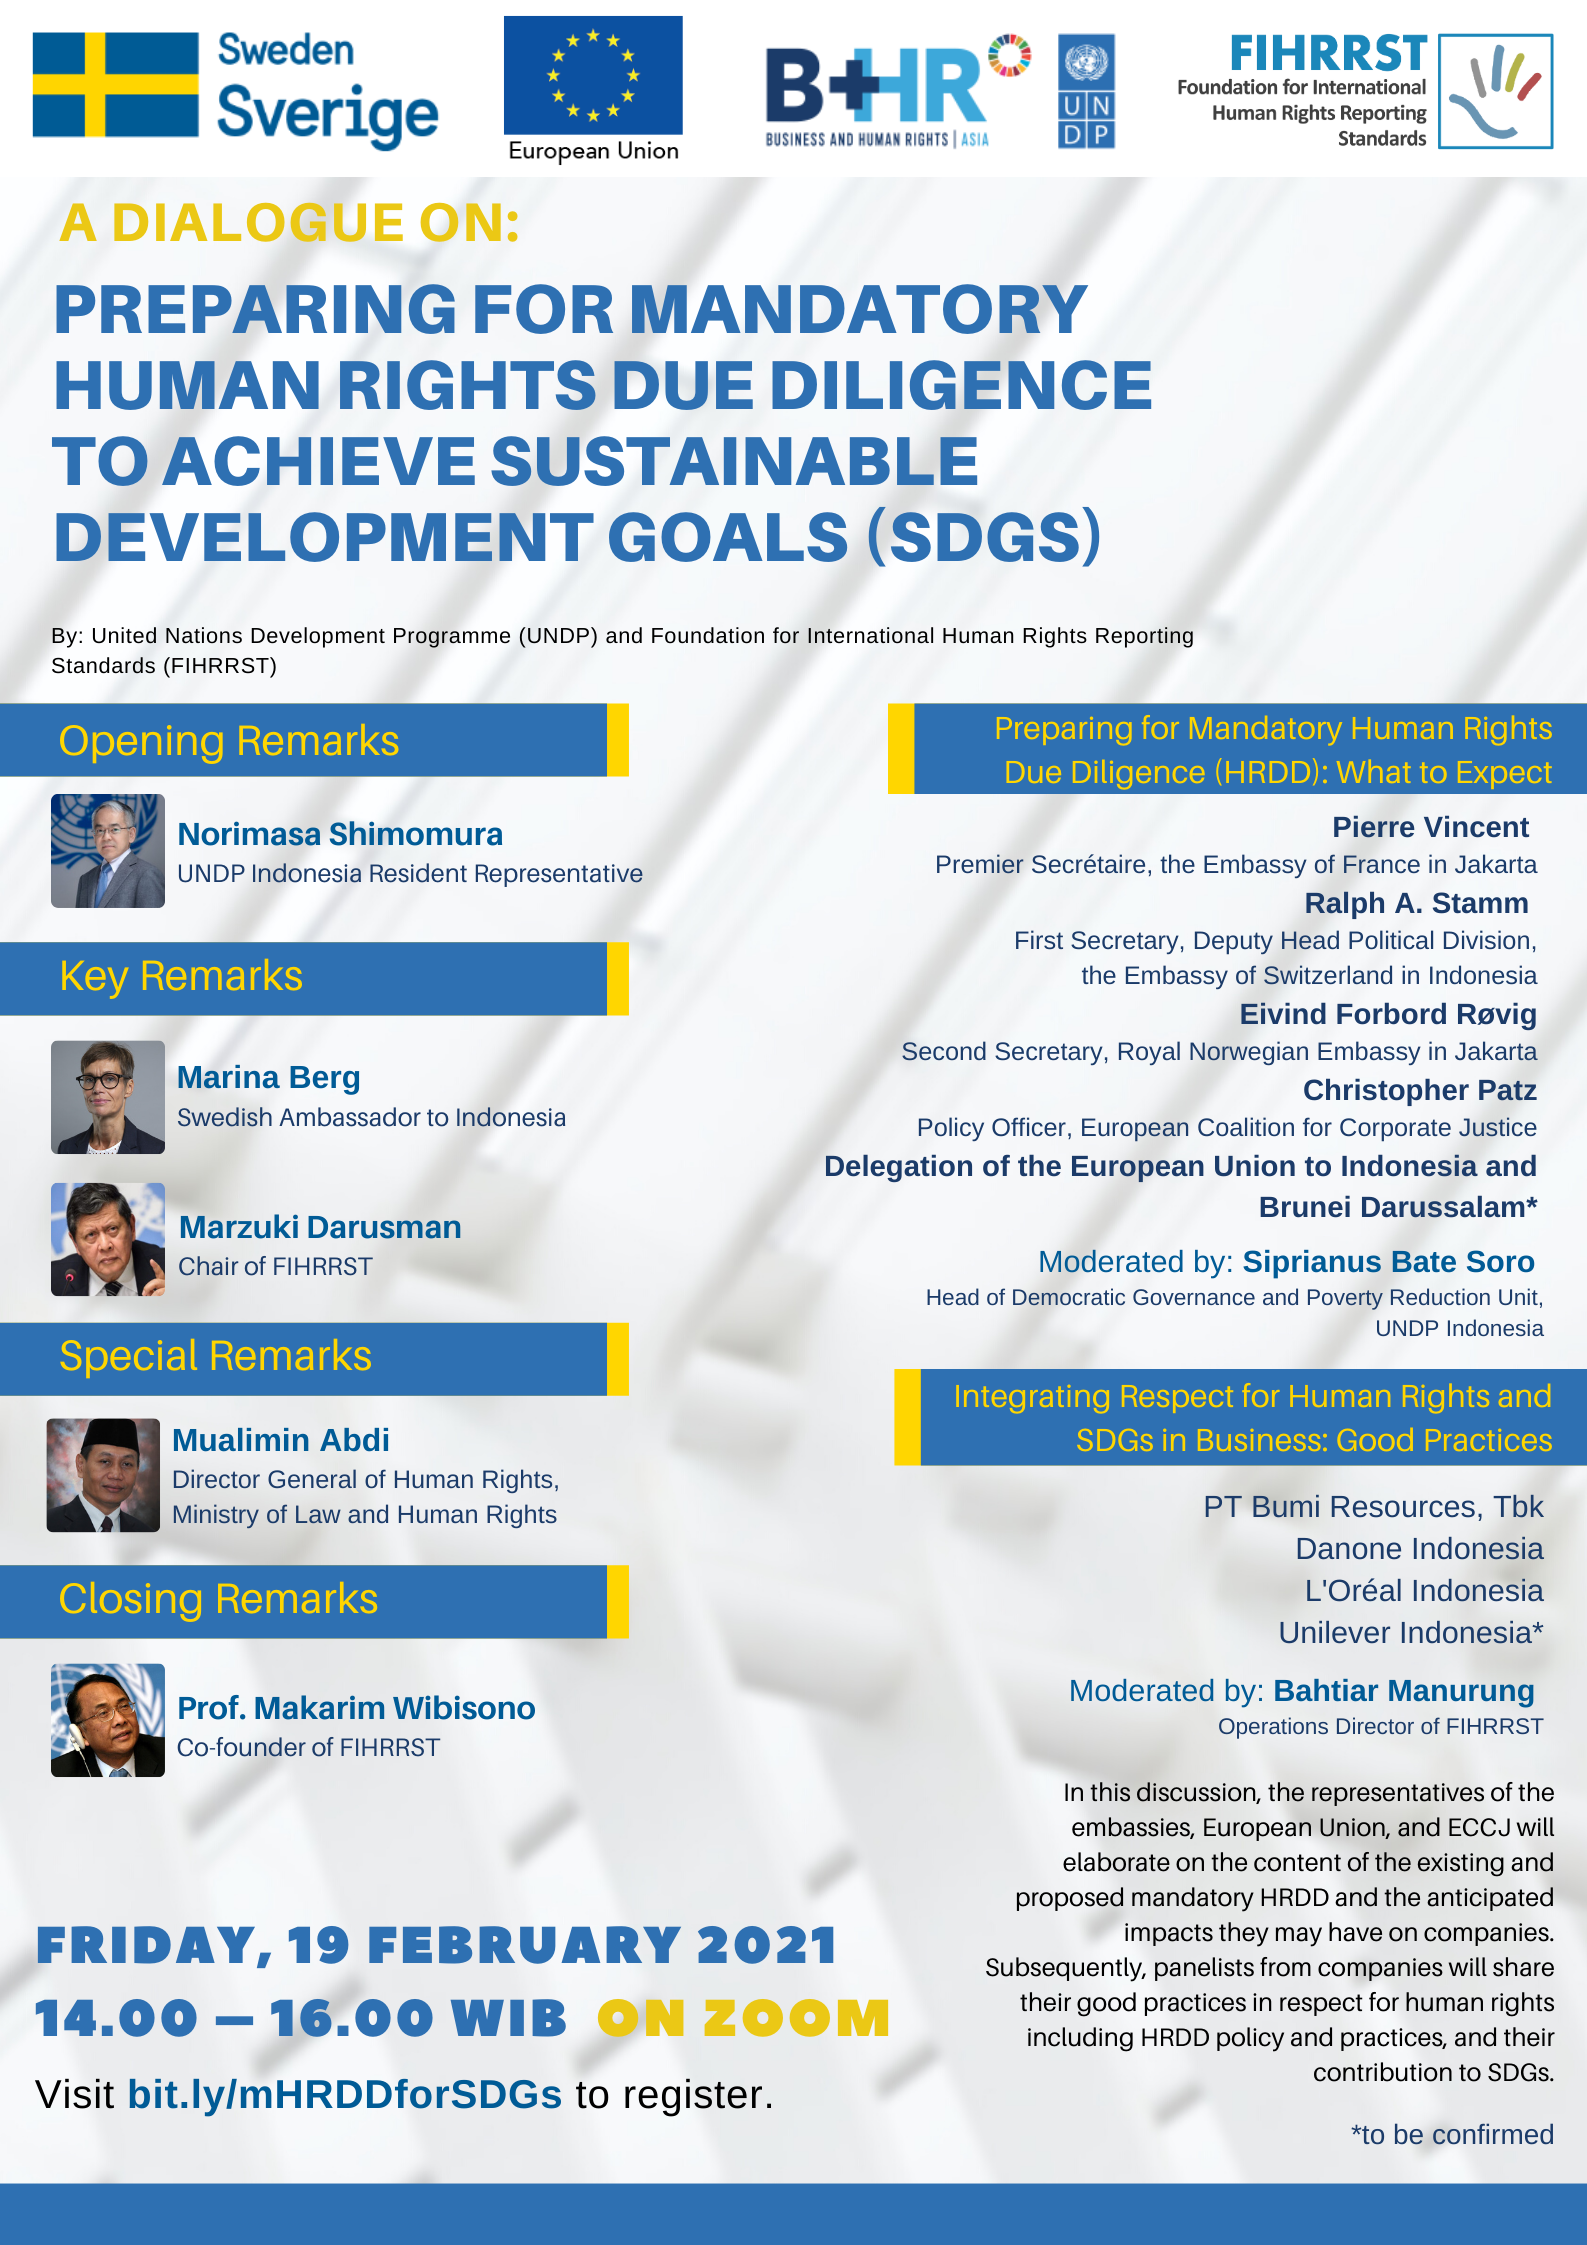 Coming Soon on 19 Feb 2021 - Discussion on Preparing for Mandatory Human Rights Due Diligence to Achieve SDGs